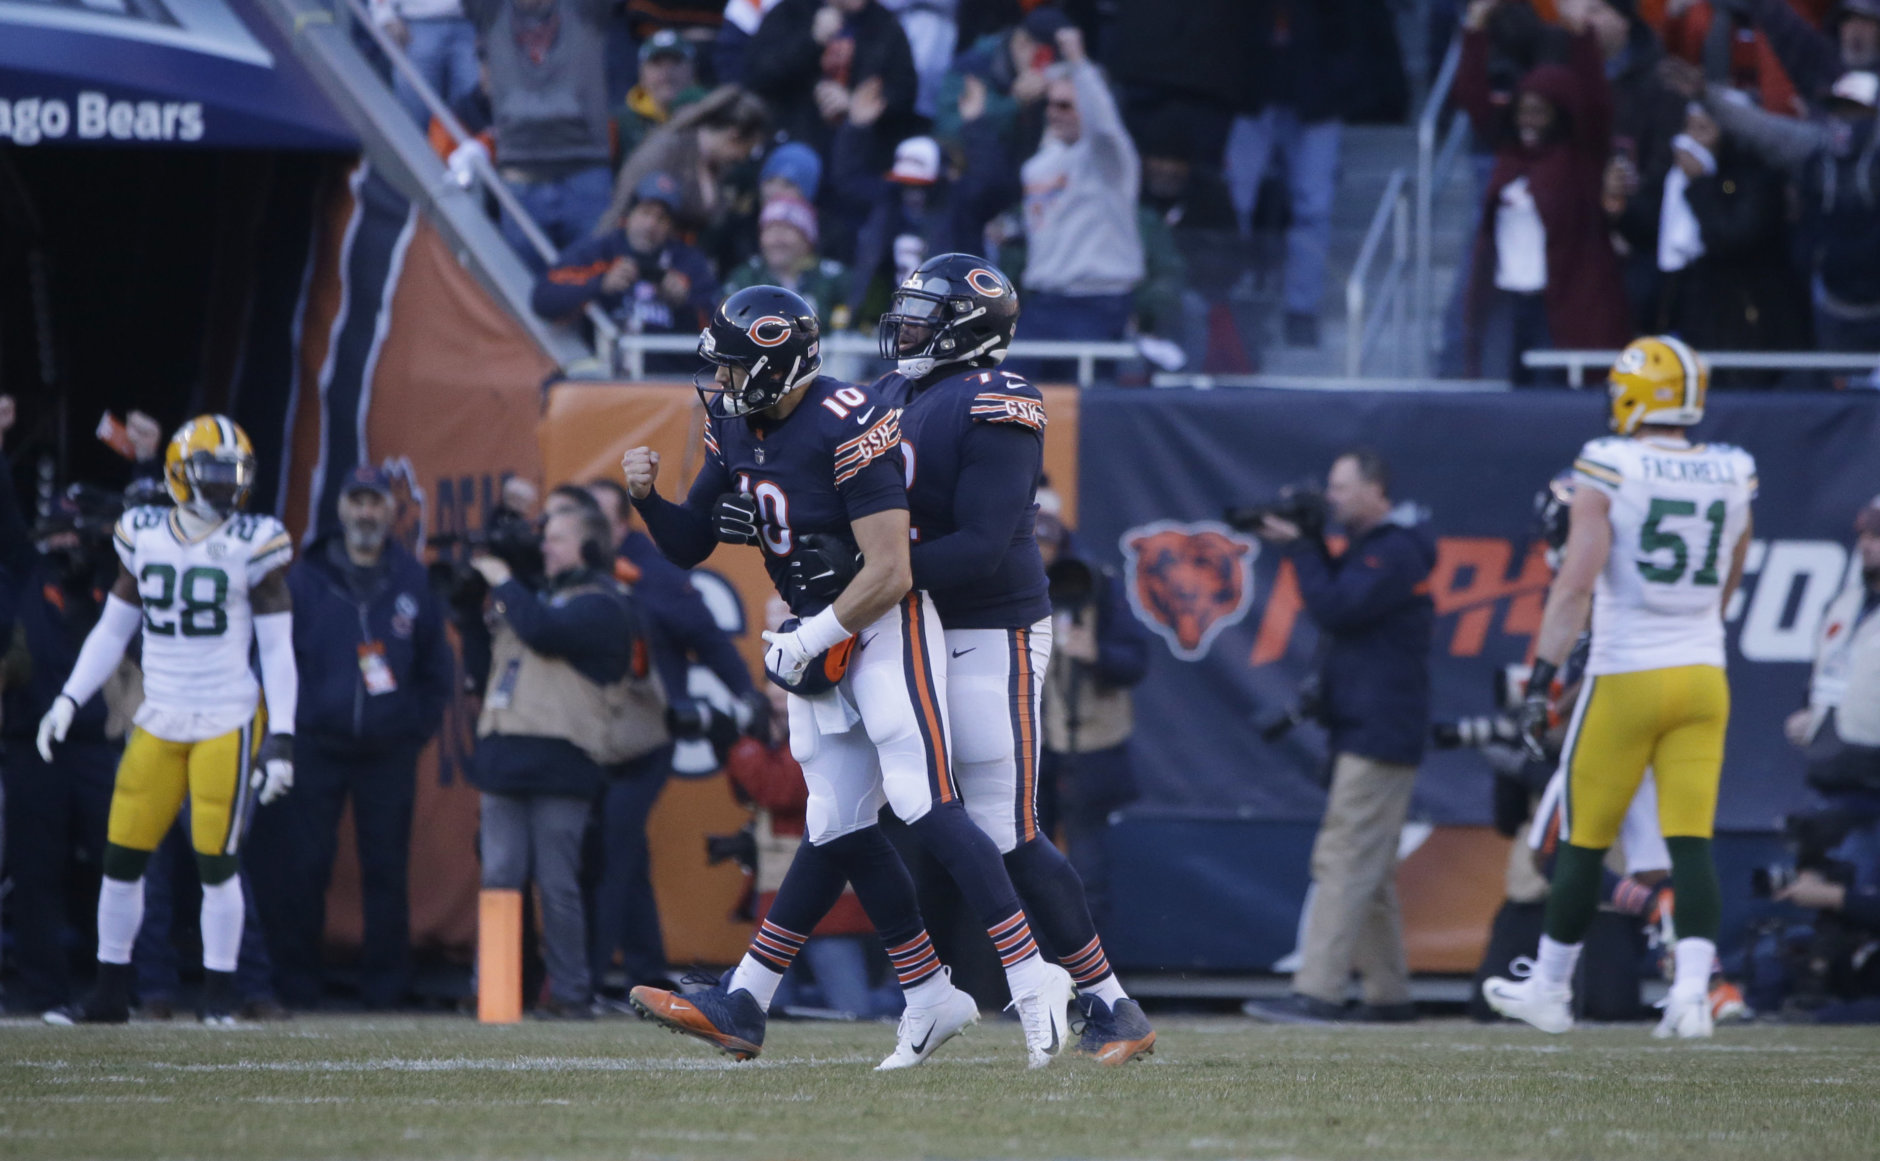 Chicago Bears quarterback Mitchell Trubisky (10) celebrates a touchdown with offensive tackle Charles Leno (72) during the second half of an NFL football game against the Green Bay Packers Sunday, Dec. 16, 2018, in Chicago. (AP Photo/David Banks)